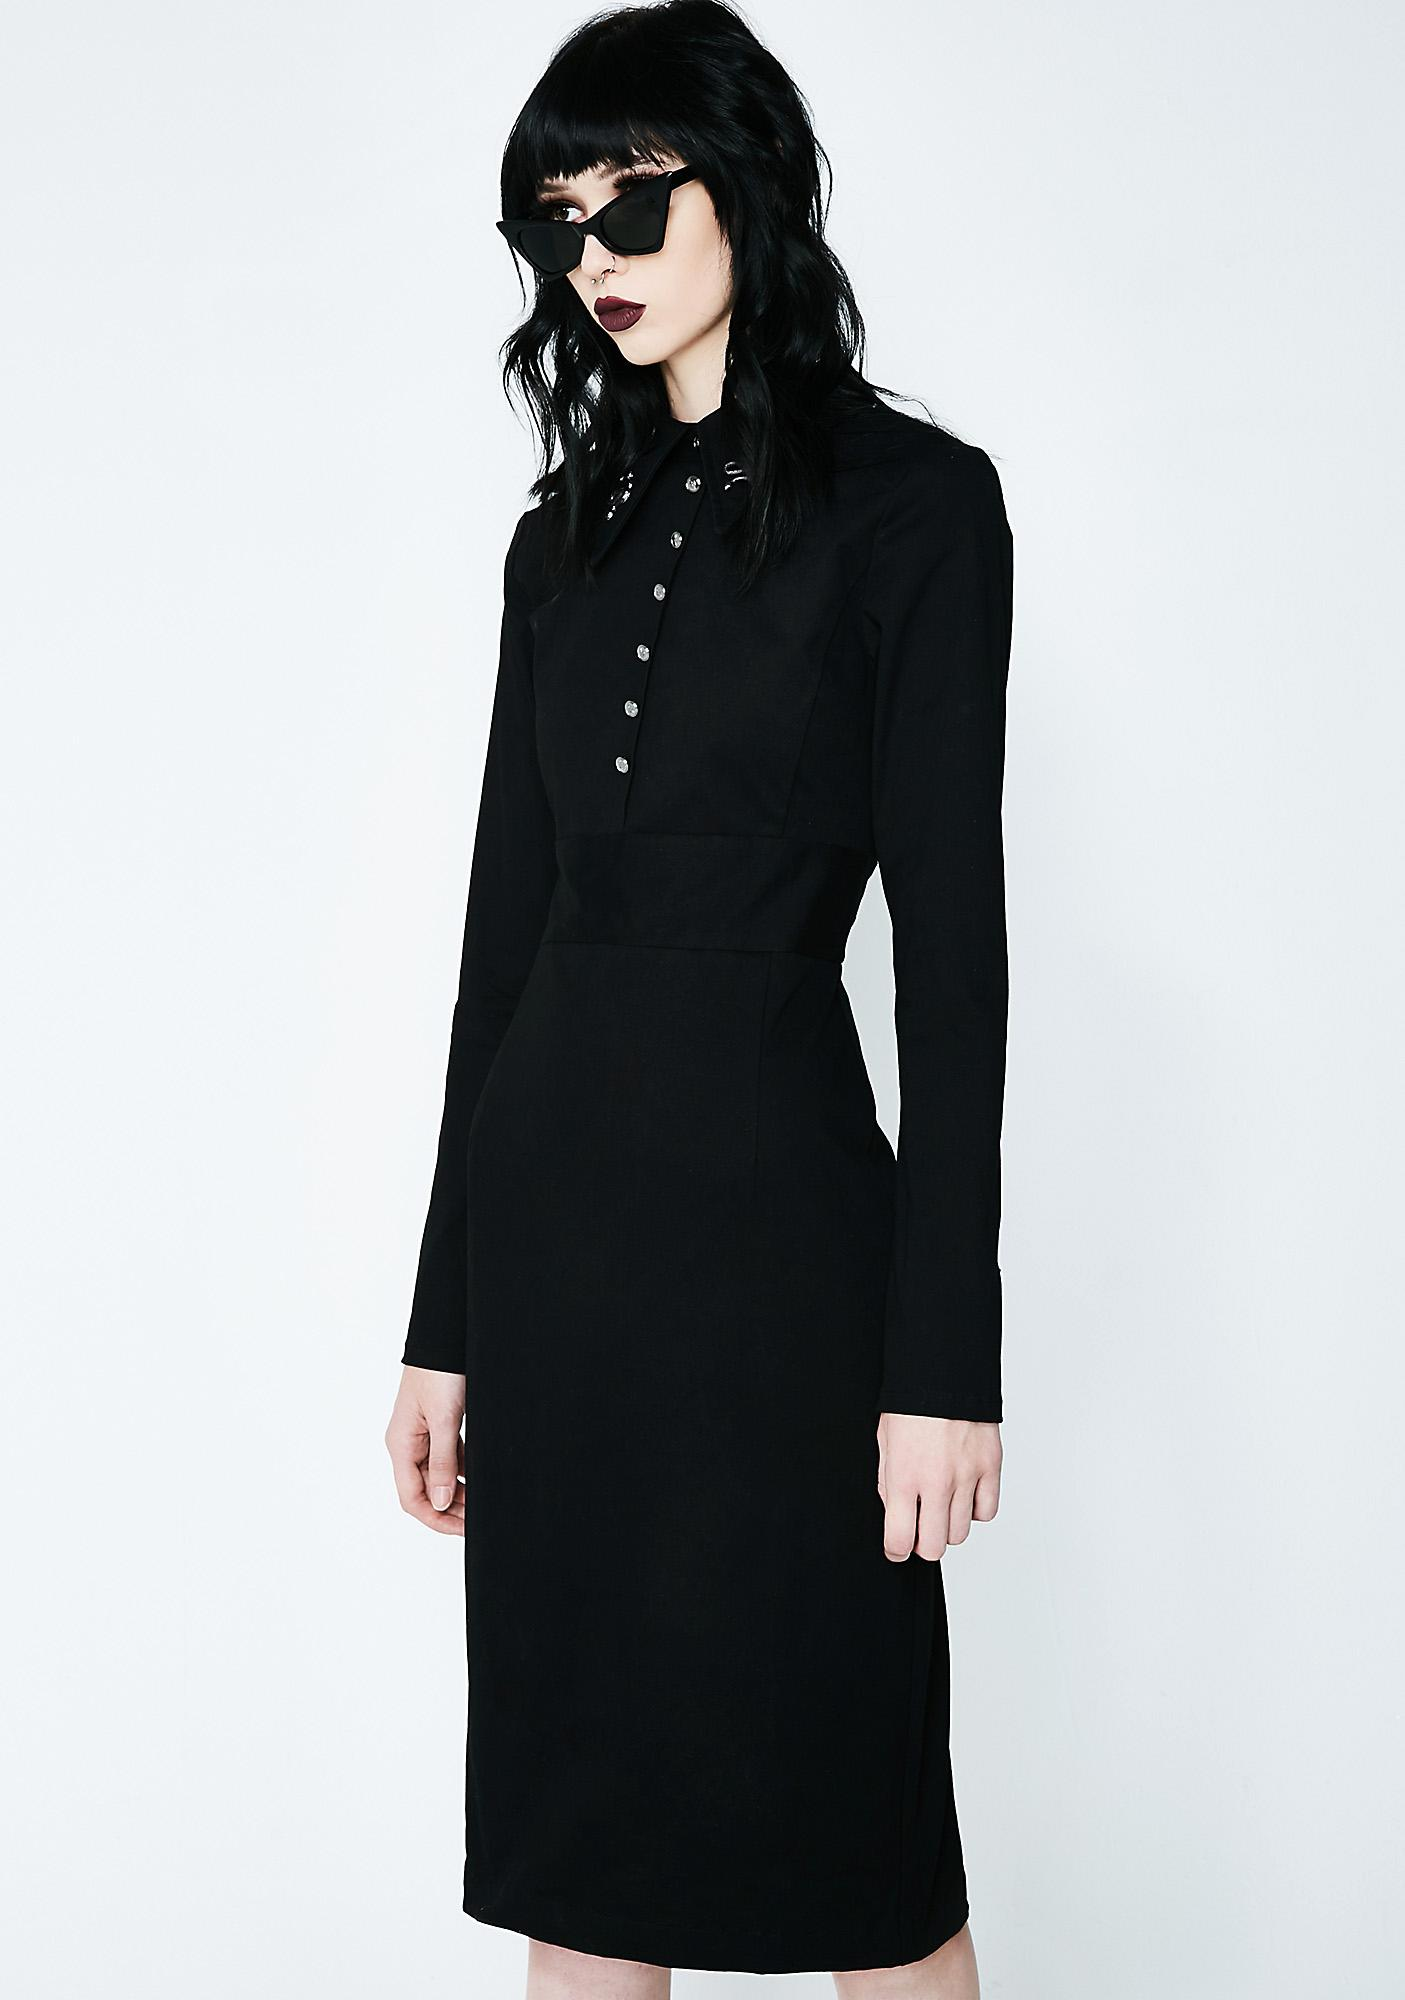 Disturbia Serpent Dress